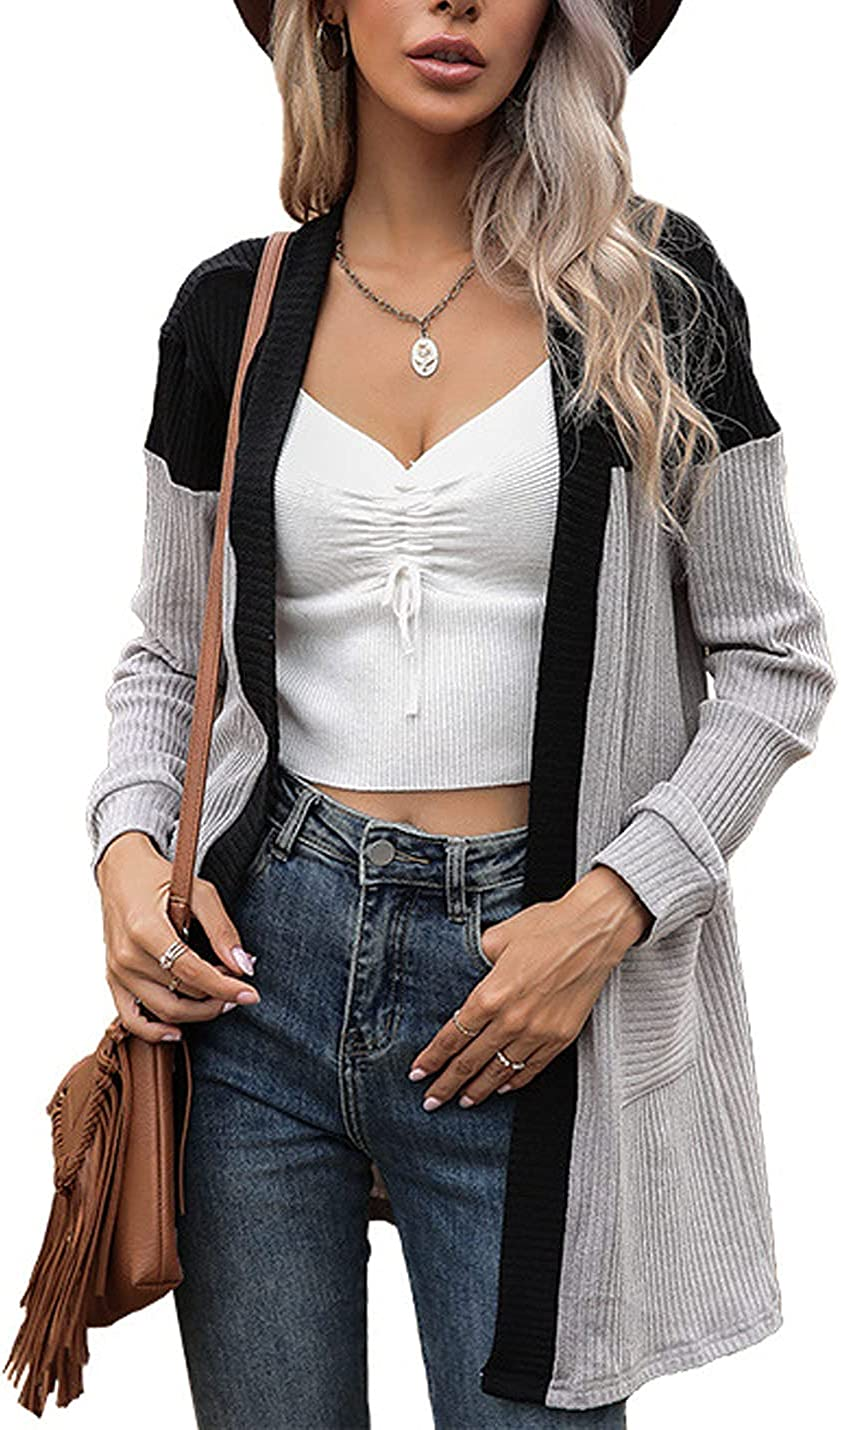 Peaceglad Womens Long Sleeve Shrug Knit Cardigan Sweaters Open Front Casual Knitted Sweater Coat with Pockets